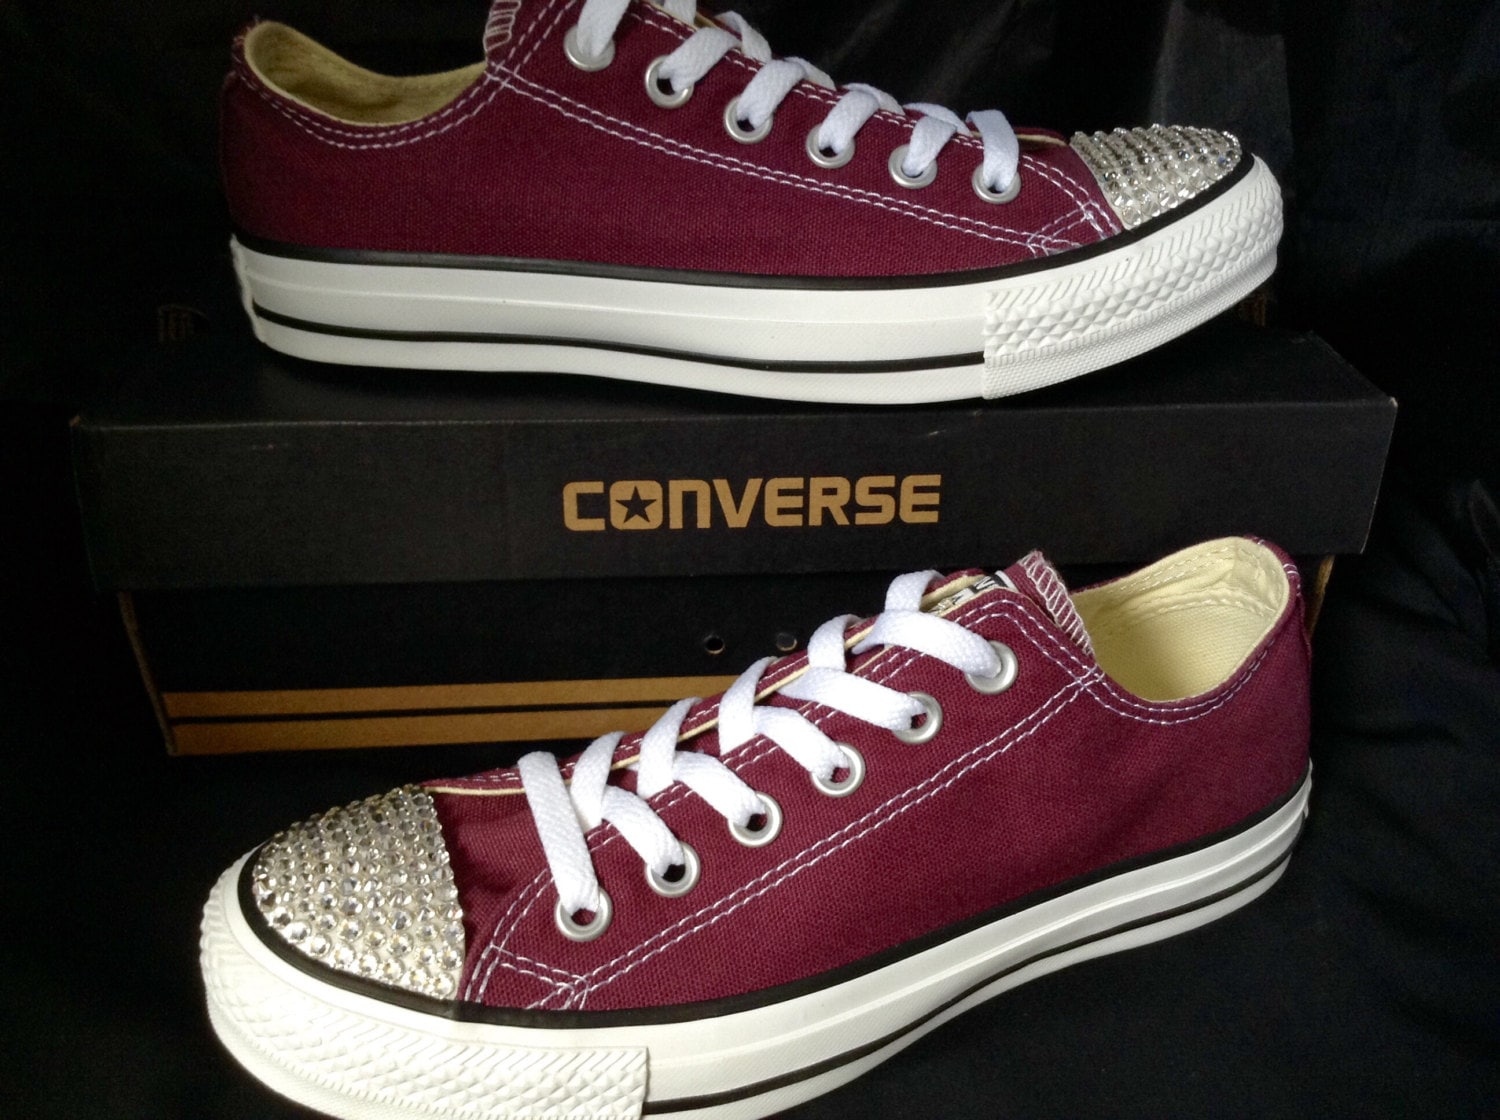 d8a3b944d23c Burgundy Converse Maroon Cranberry Wine Red Mens Canvas Low Top w   Swarovski Crystal Rhinestone Chuck Taylor All Star Wedding Sneakers Shoes